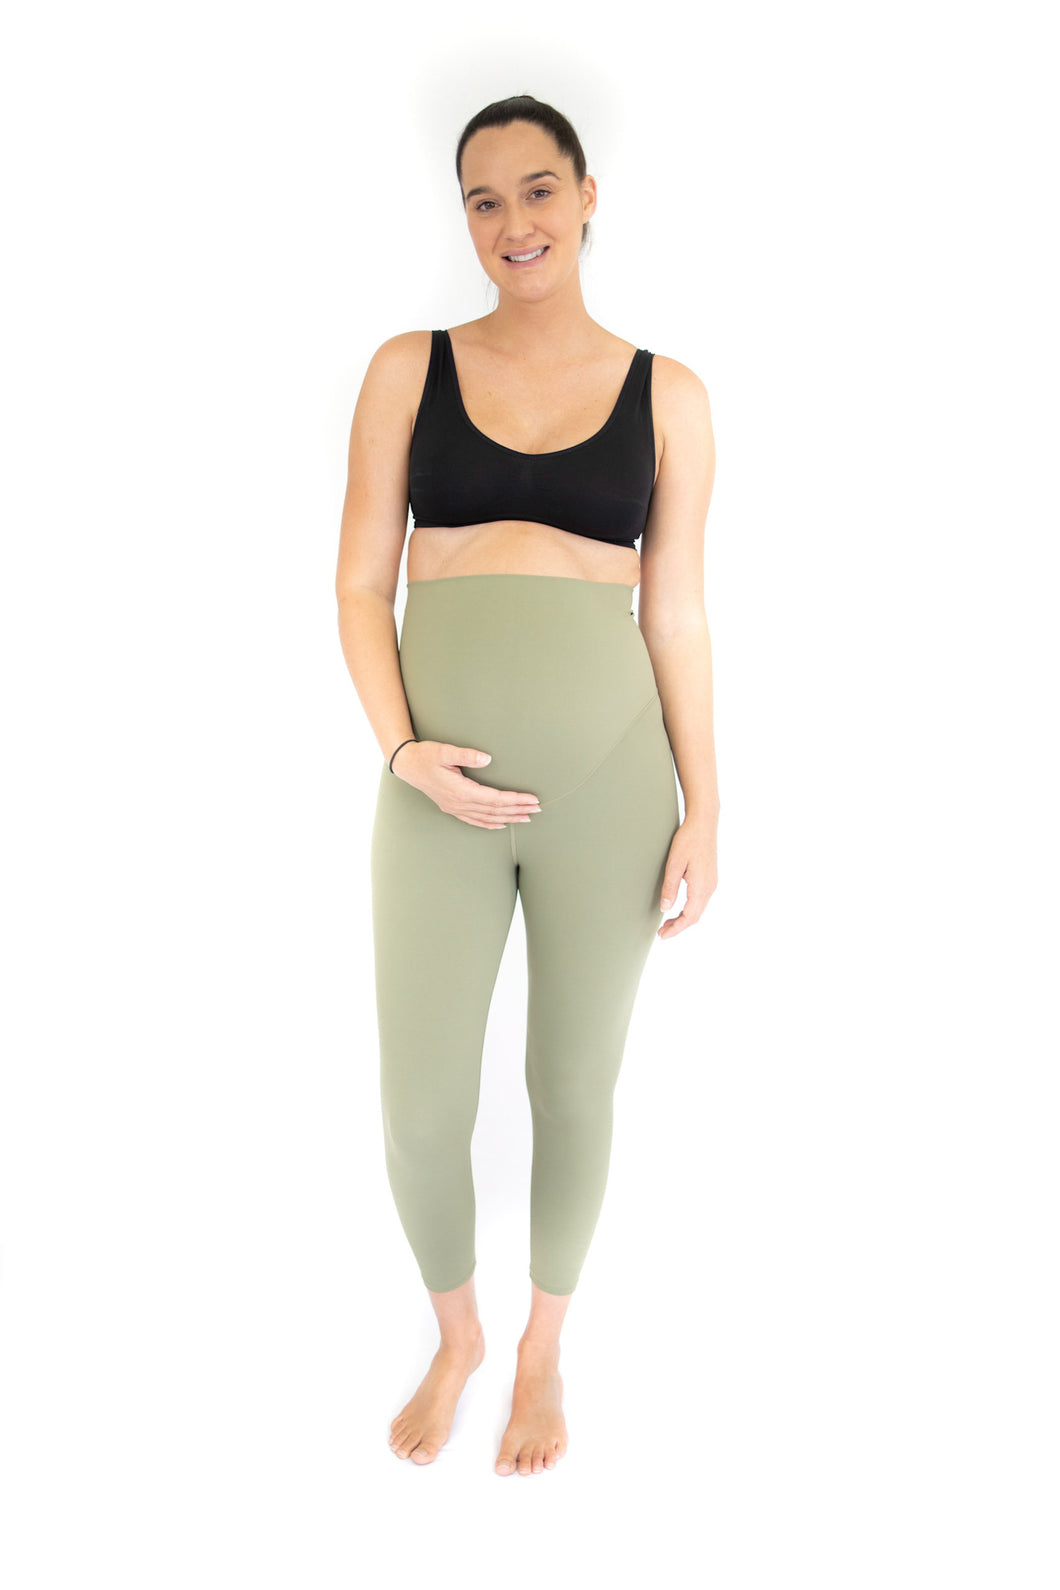 7/8 Maternity Leggings - Olive